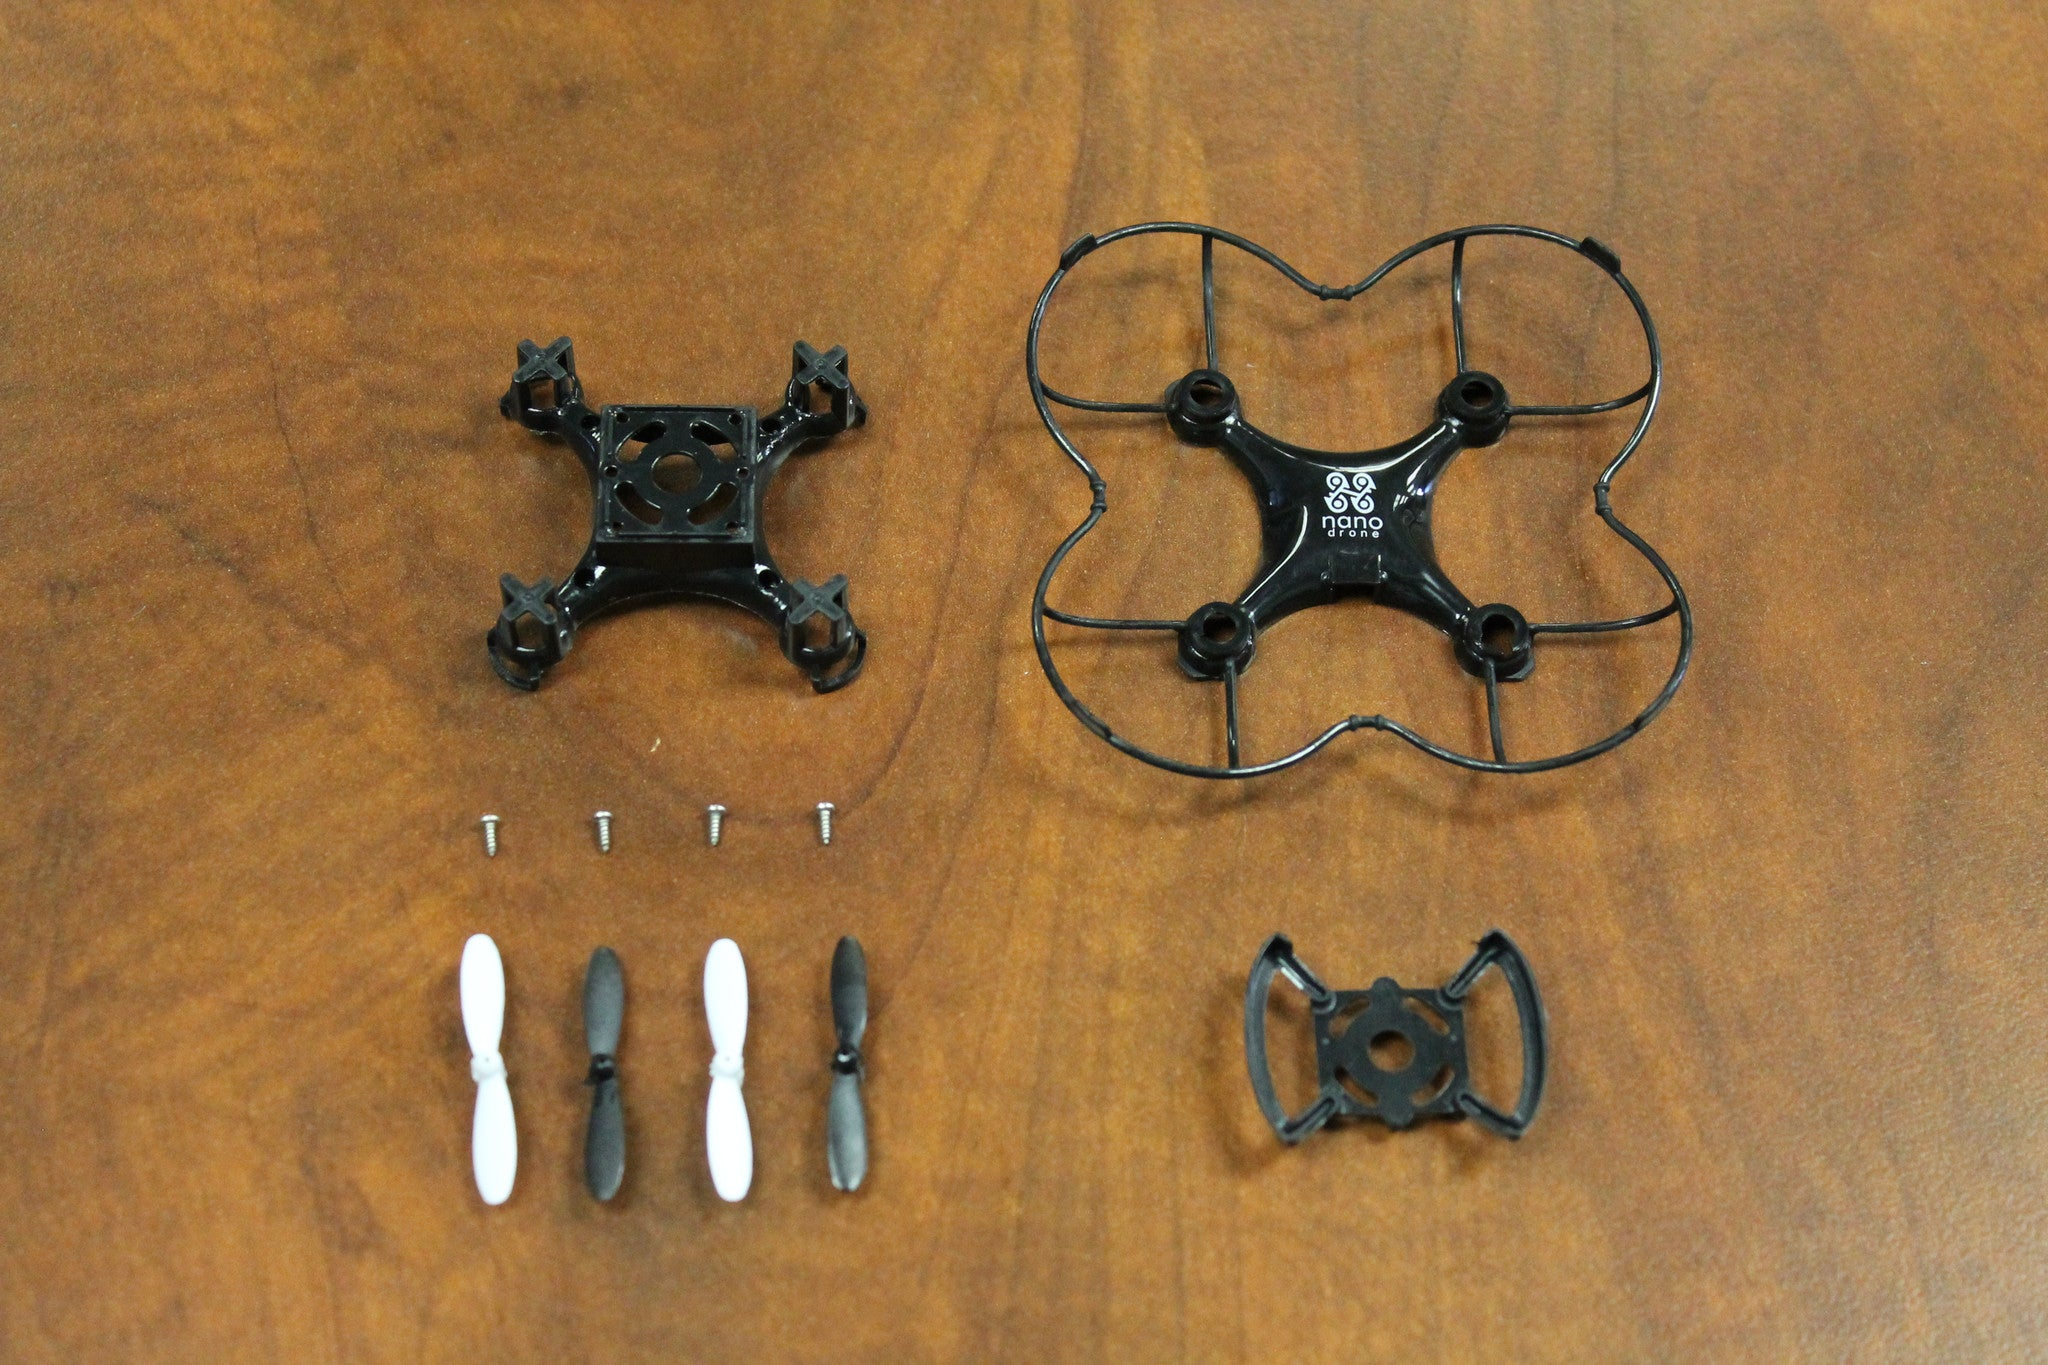 Crash Kit - Nano Drone for Beginners